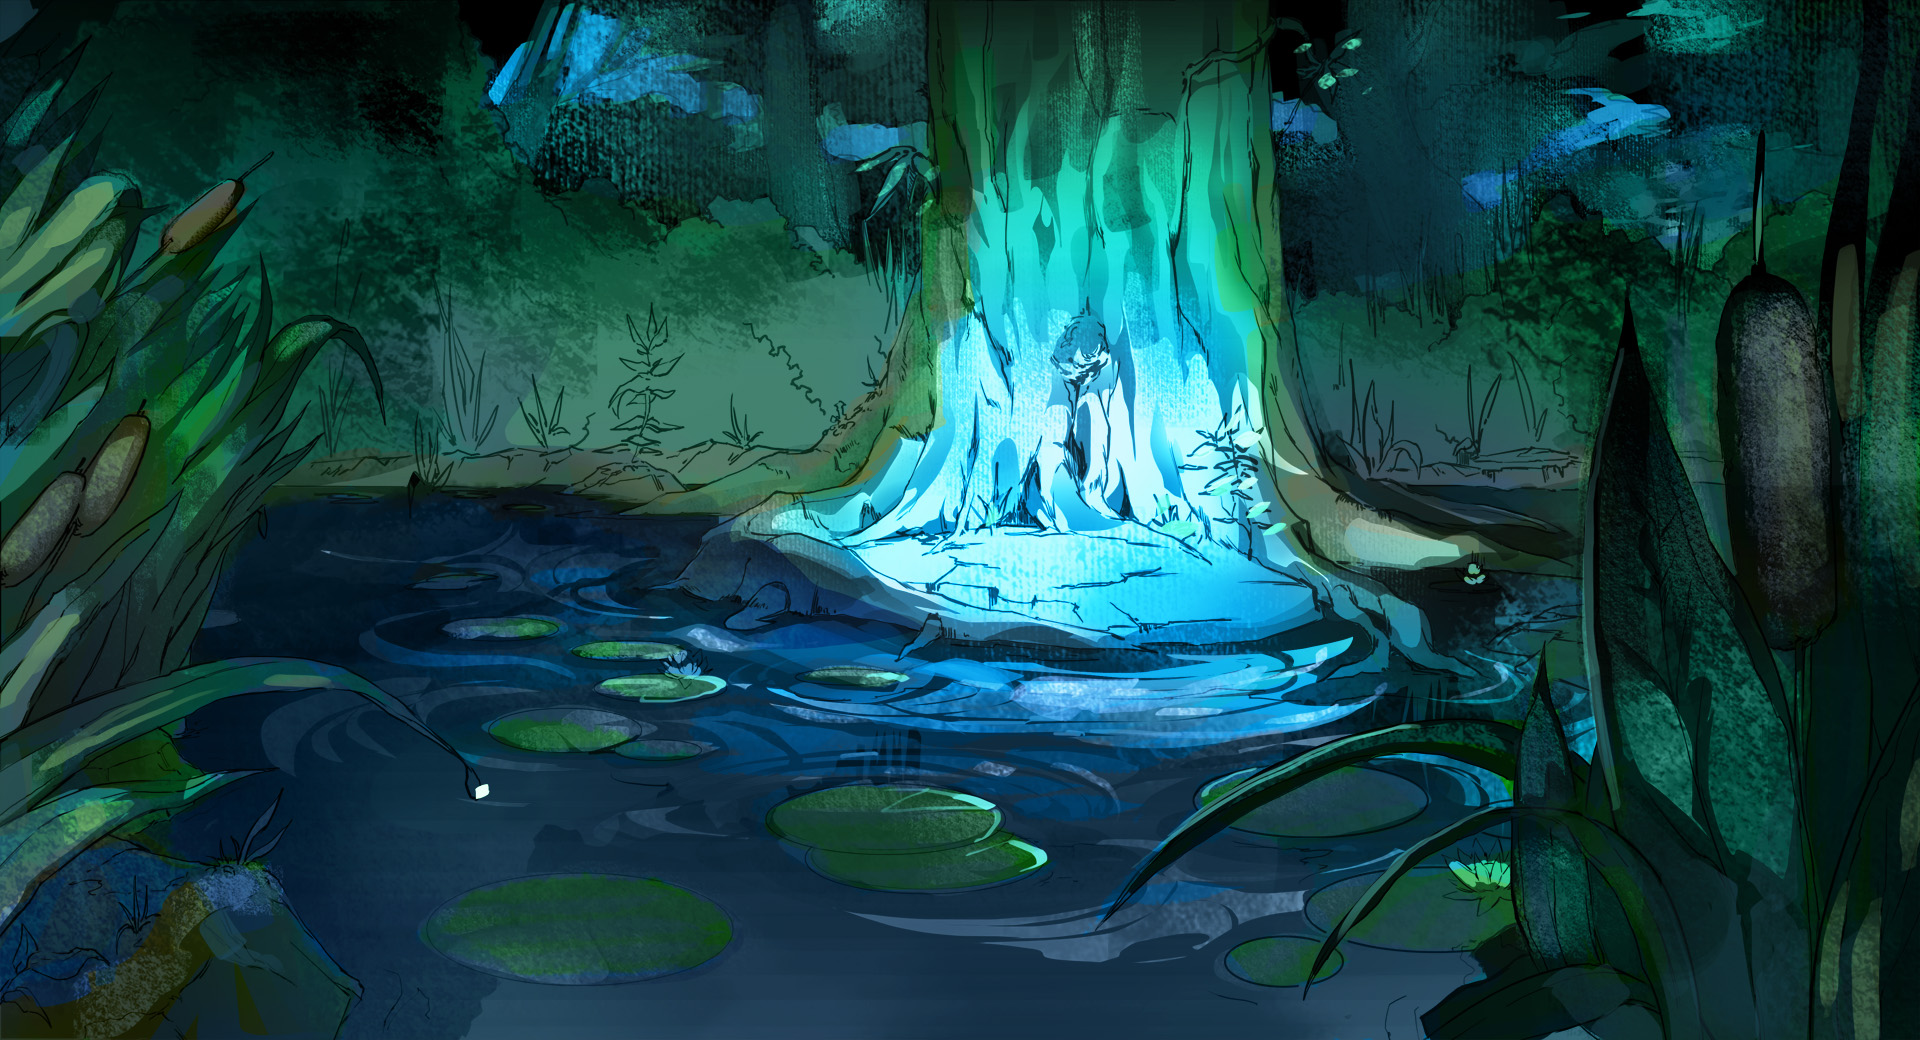 Drawn background forest Drawn 1920x1040 Backgrounds WallpaperPulse